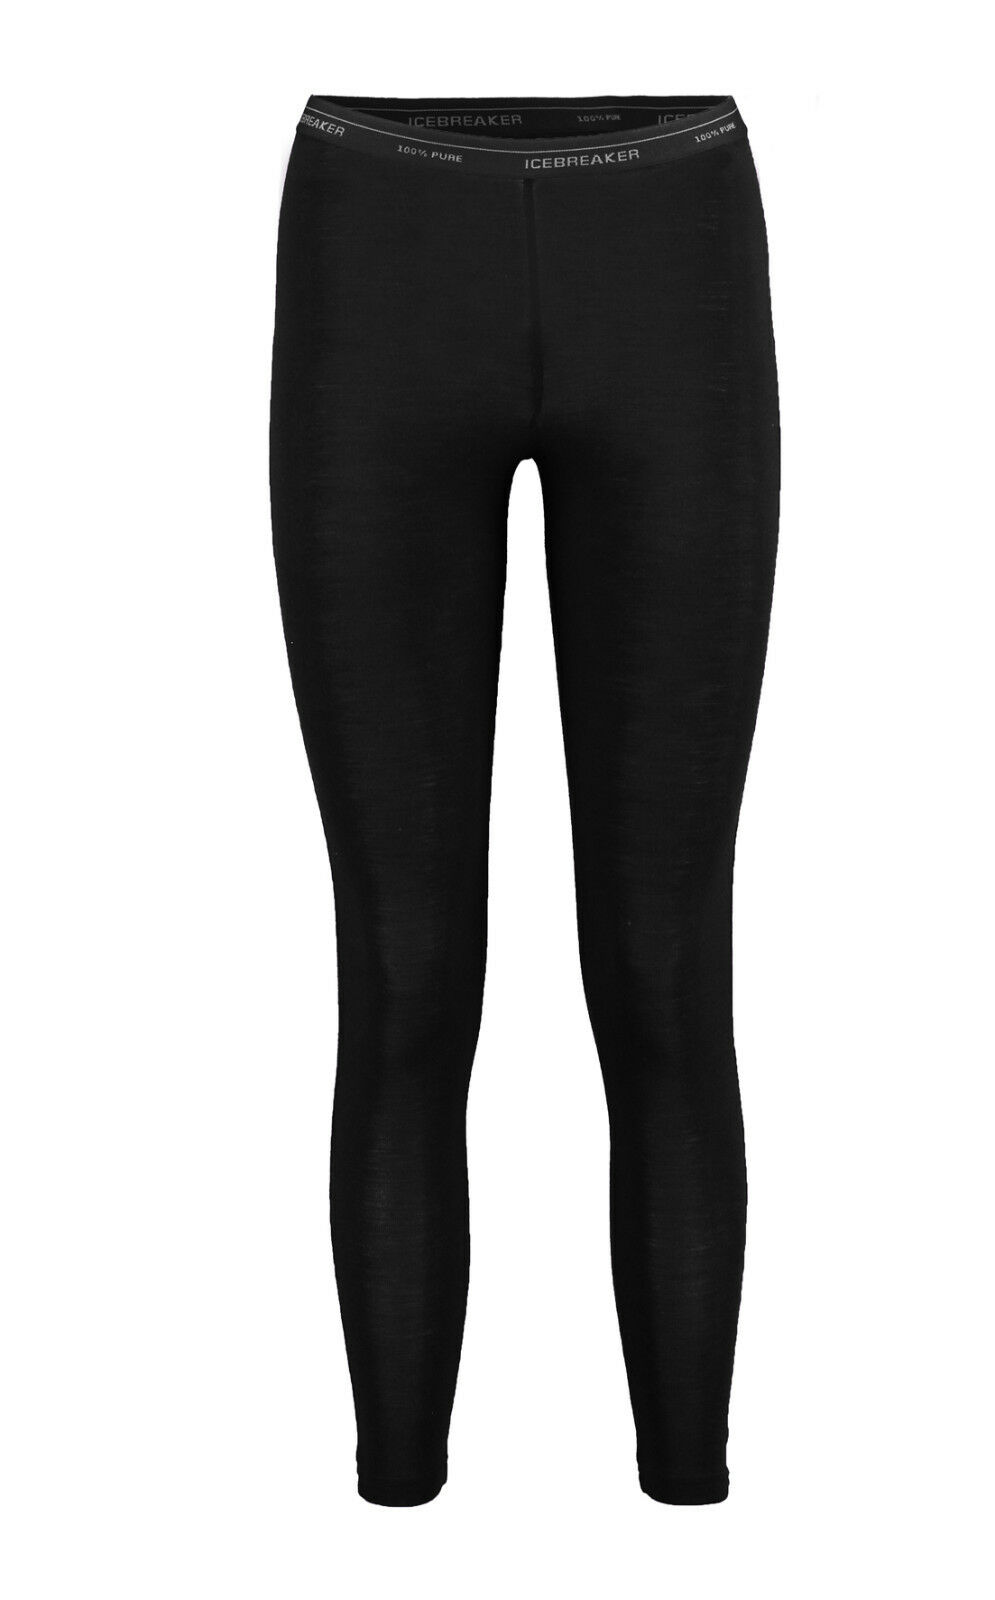 20623a45627a18 ICEBREAKER Everyday Everyday Everyday Leggings - damen - 200g m² - für  Sport und Winter 4f2a8f